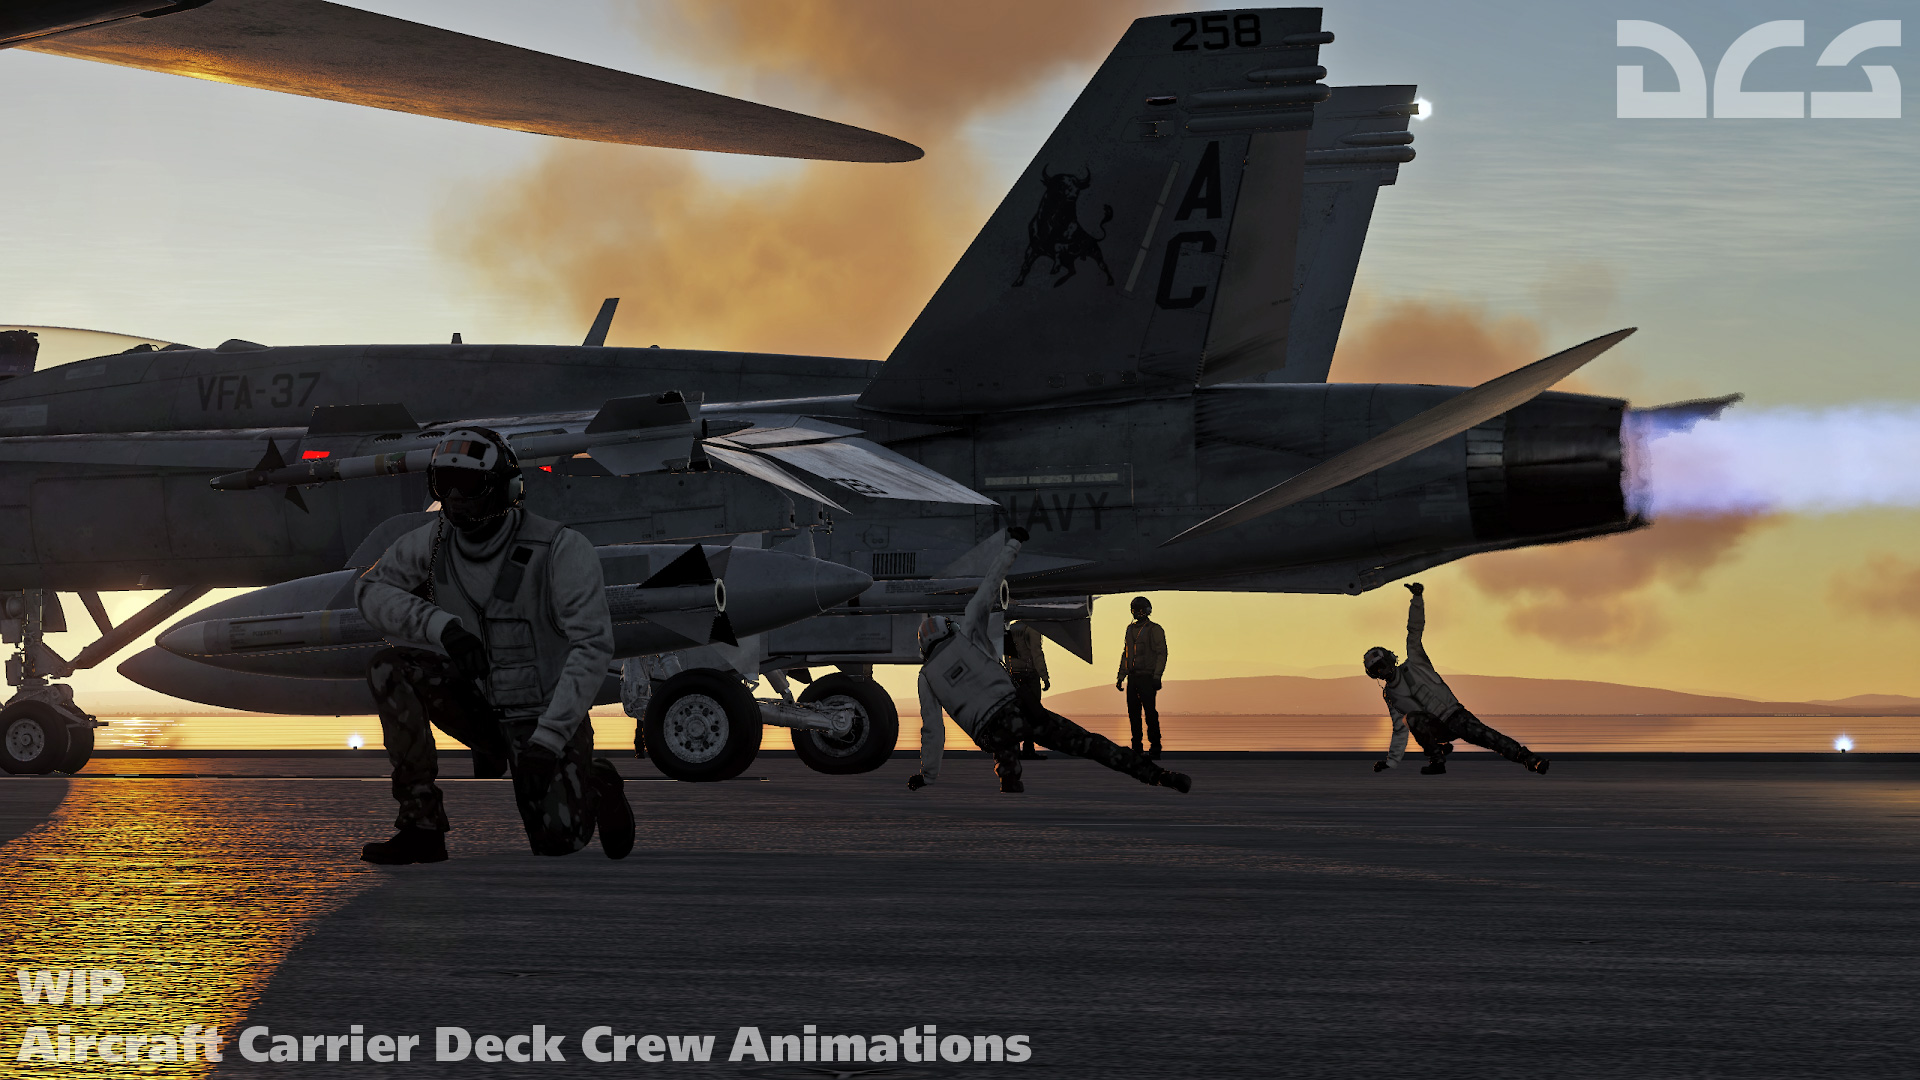 Aircraft-Carrier-Deck-Crew-Animations-04